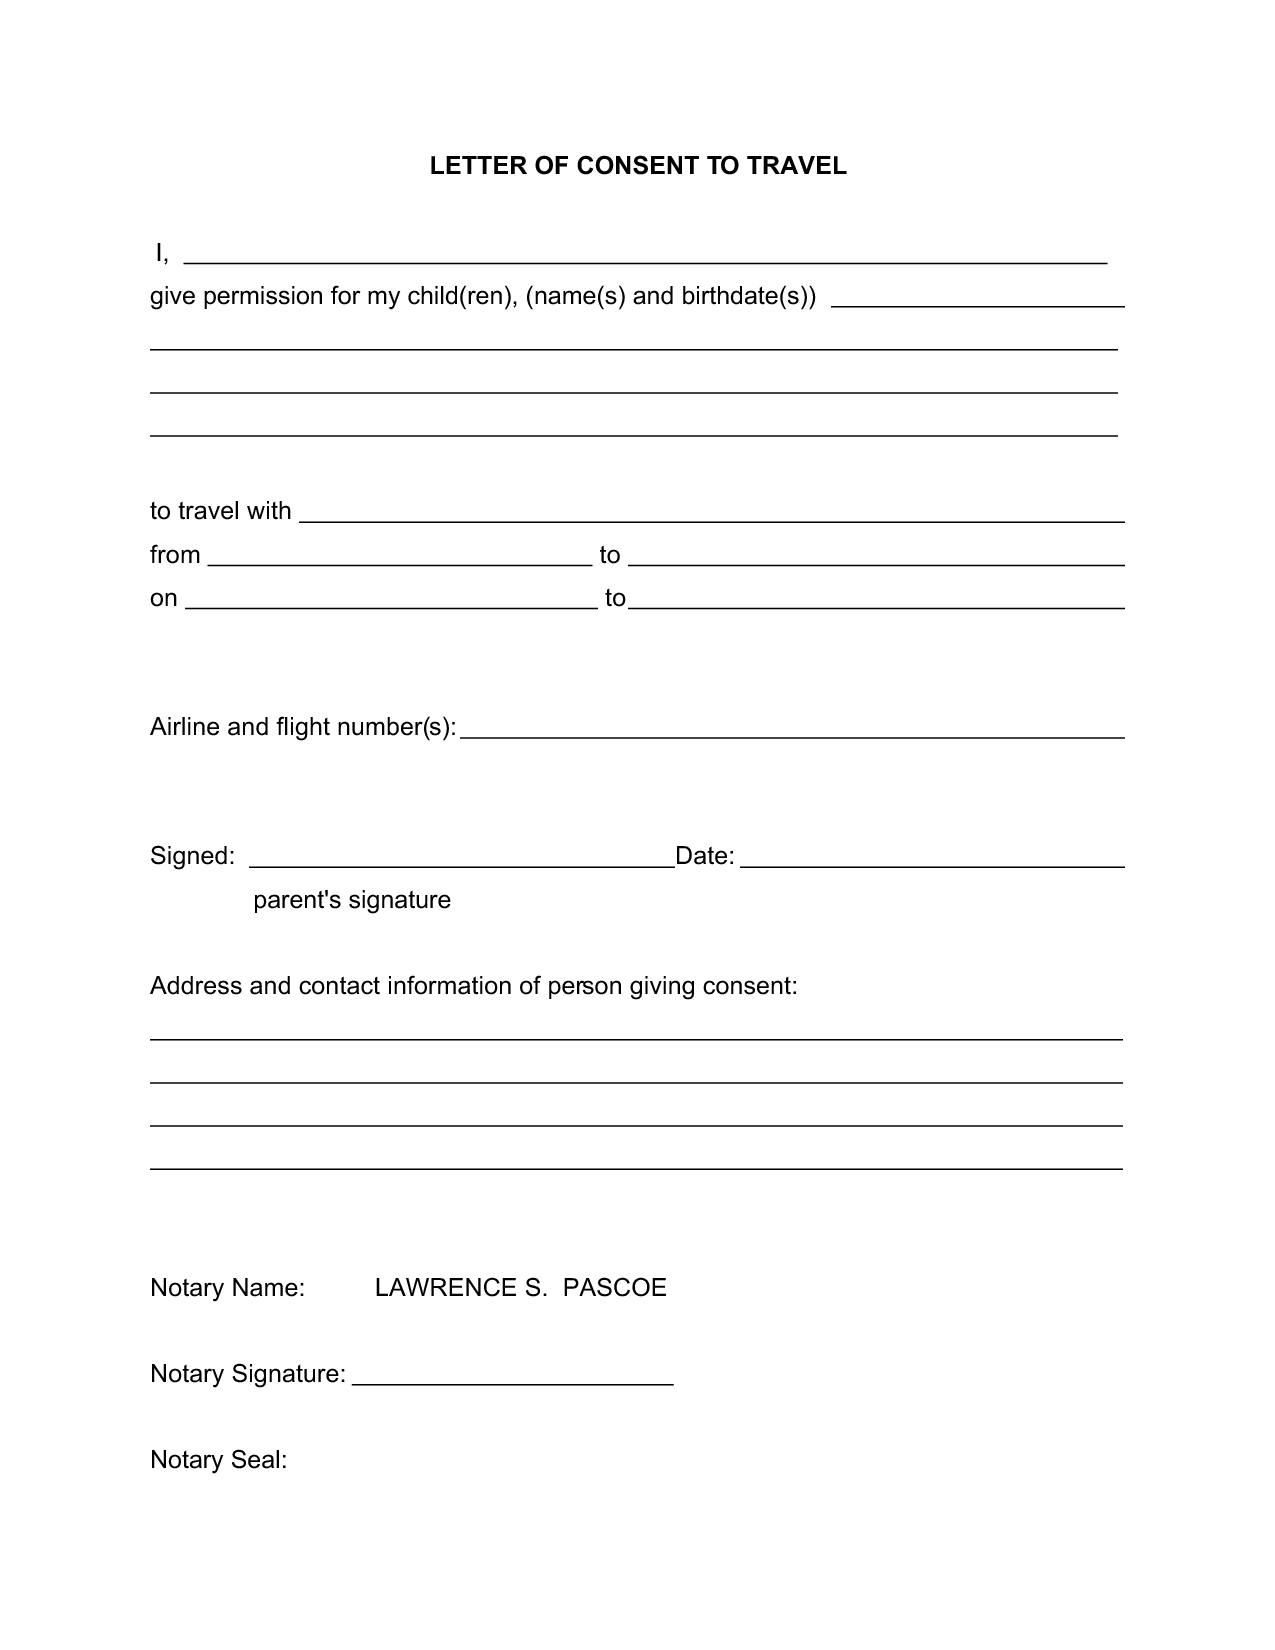 notarized letter template for child travel colomb | news to gow